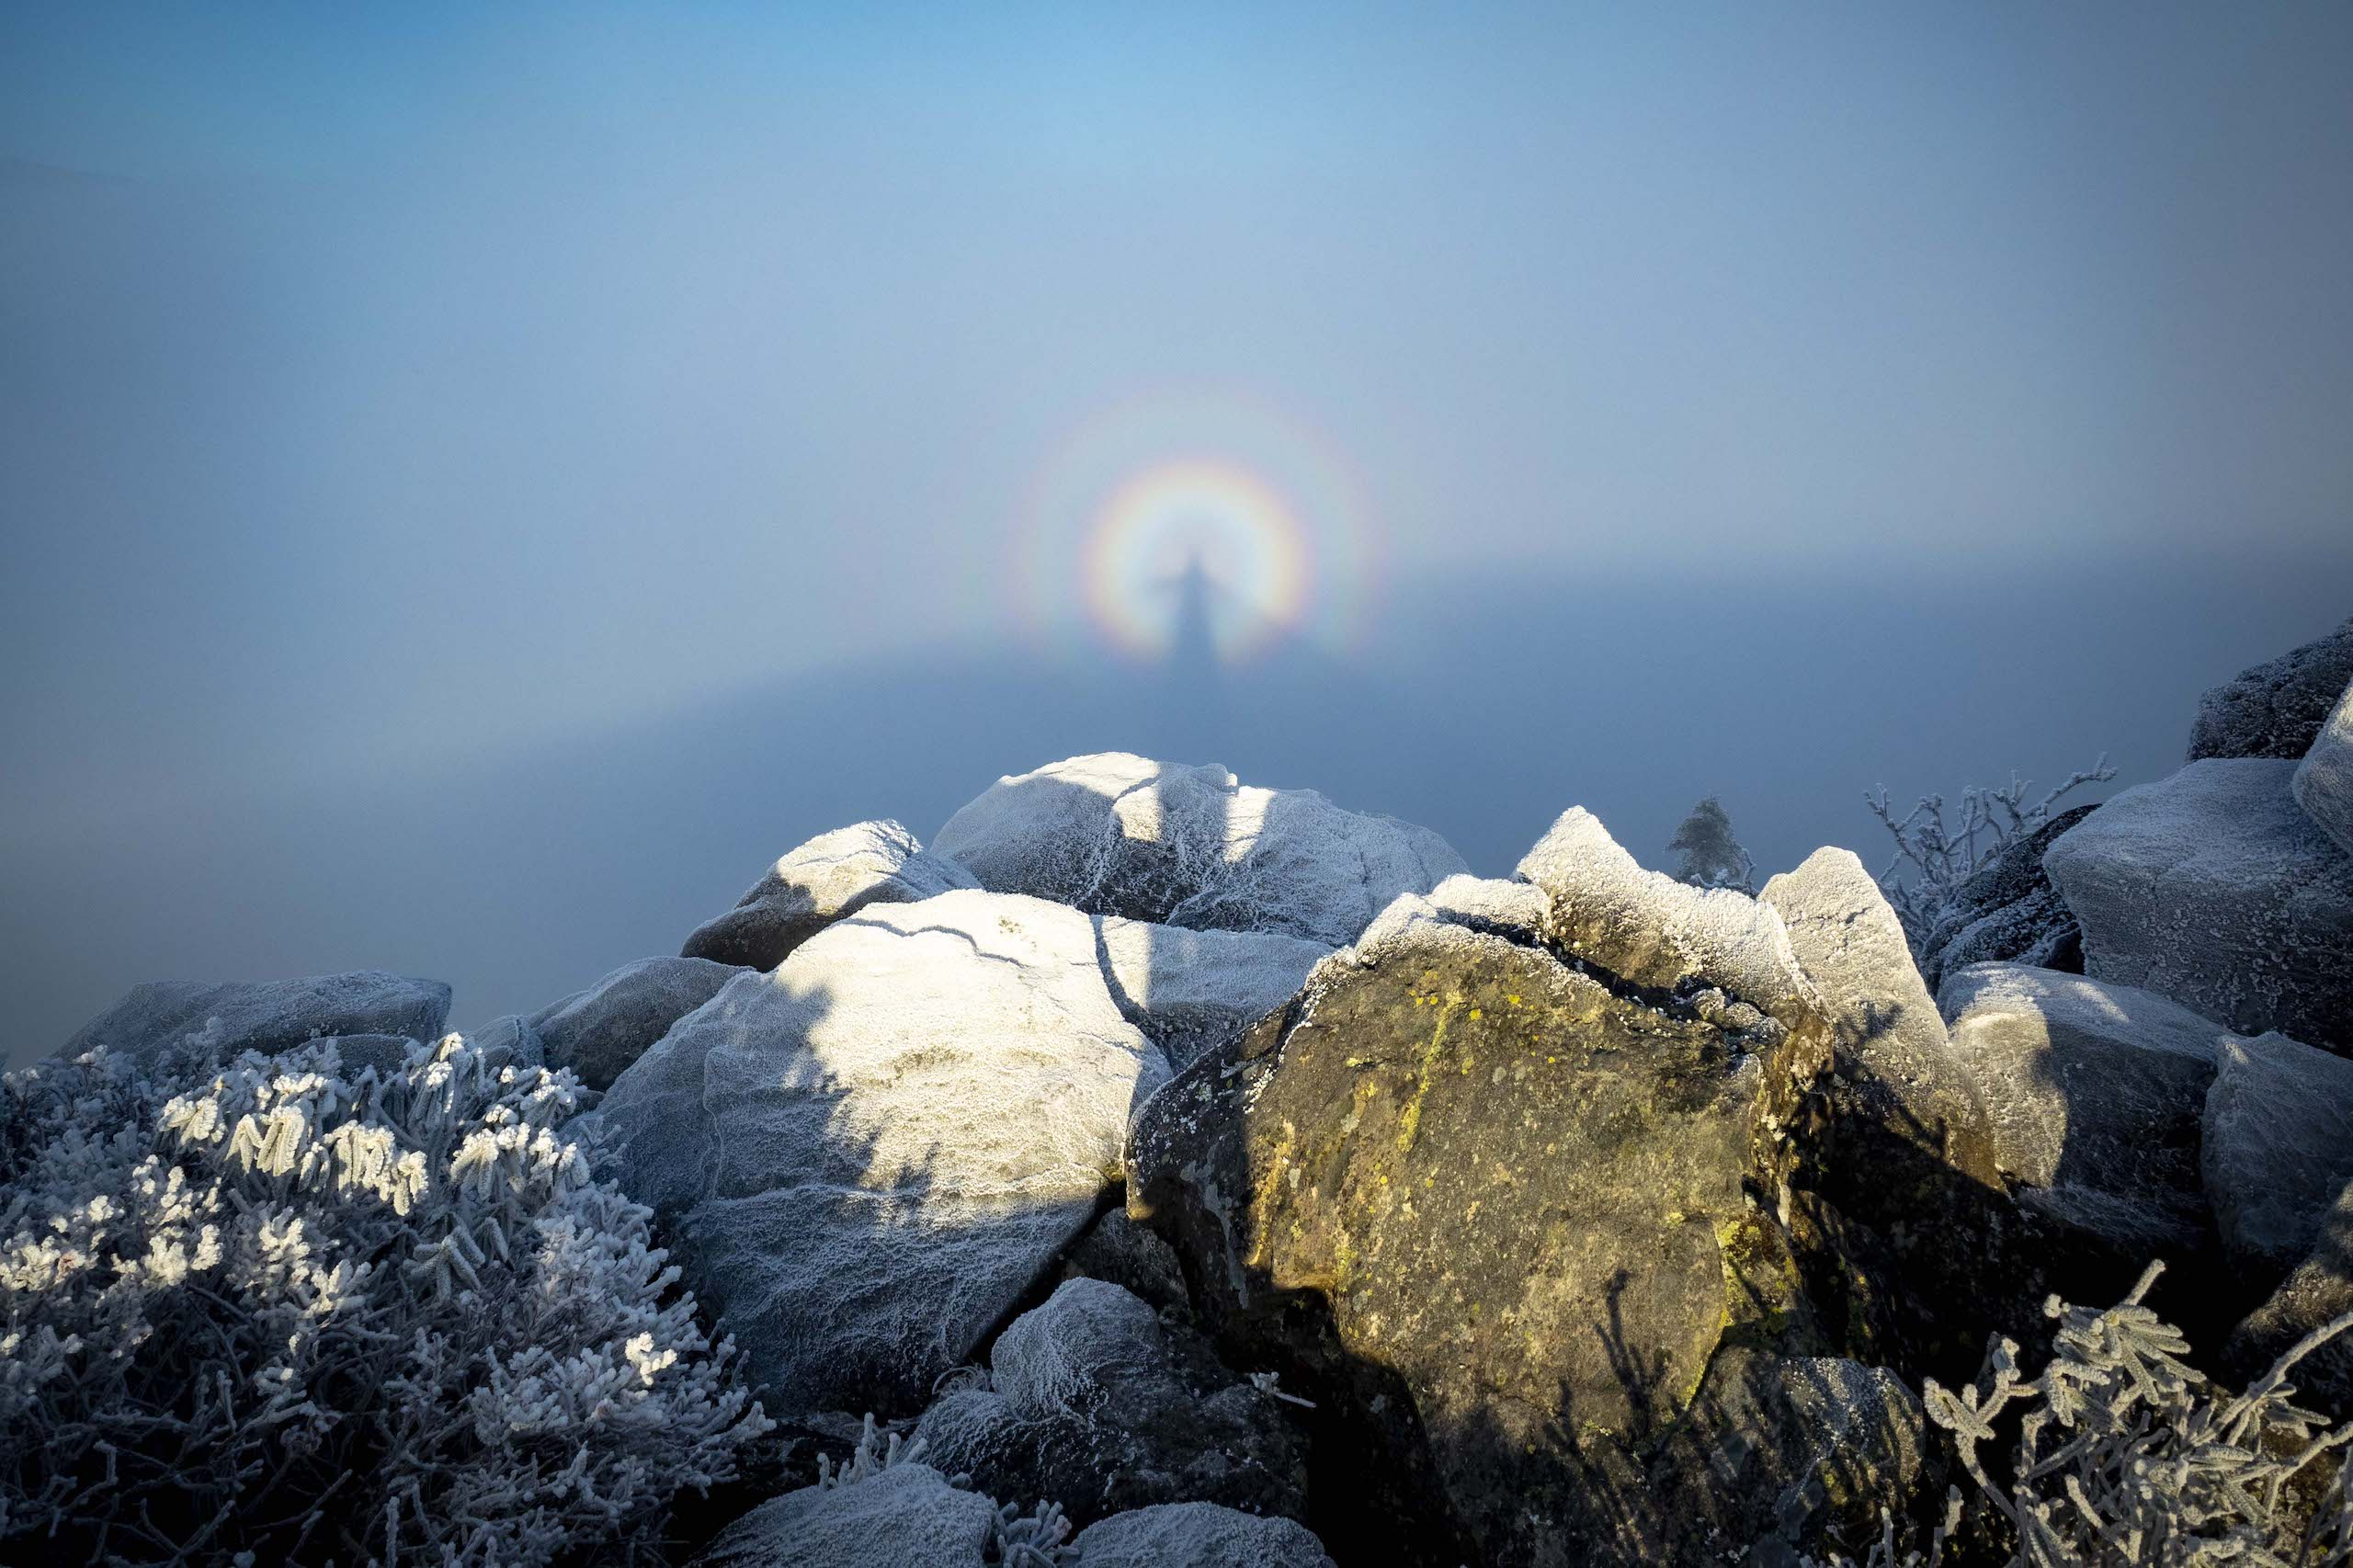 William Mauney; Sugar Mountain Brocken Spectre; People's Choice Award; 2020 Appalachian Mountain Photography Competition & Exhibition.